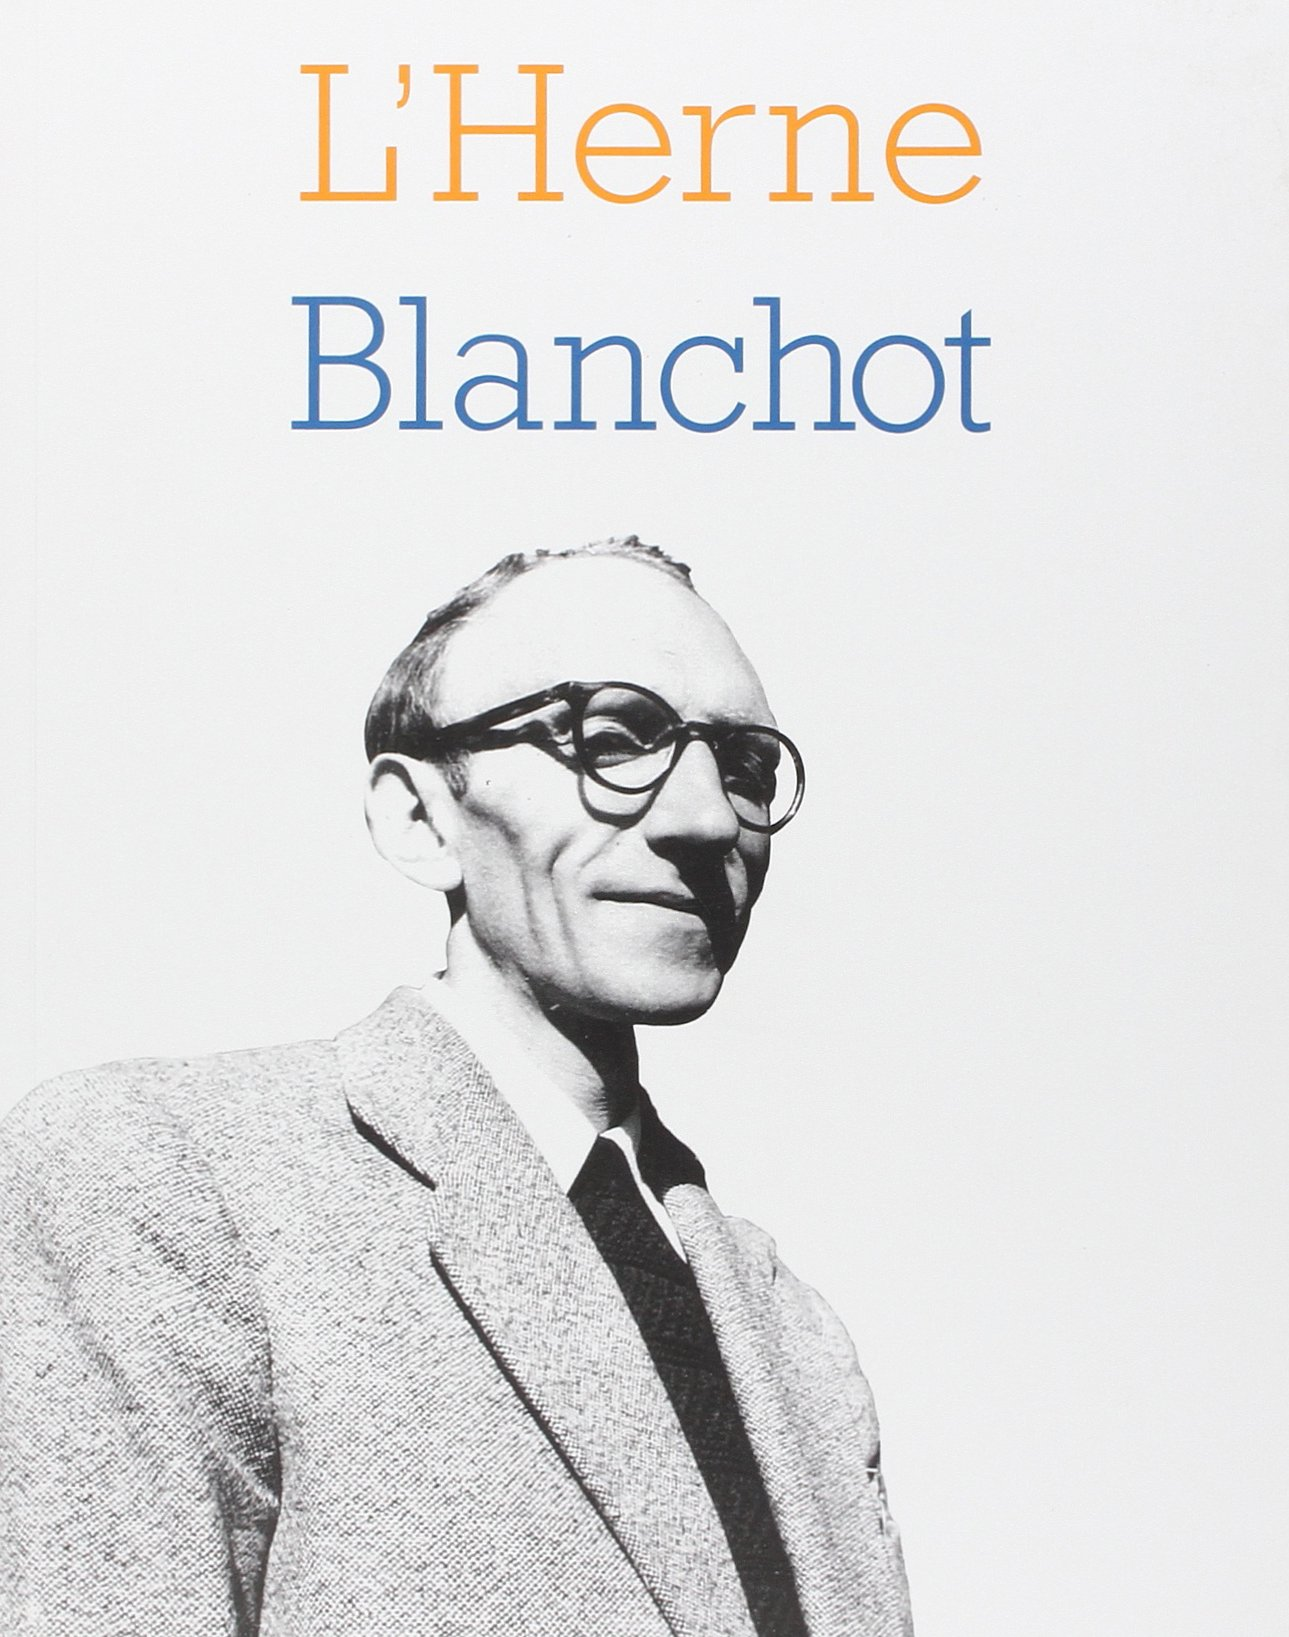 Maurice Blanchot, Cahier de L'Herne